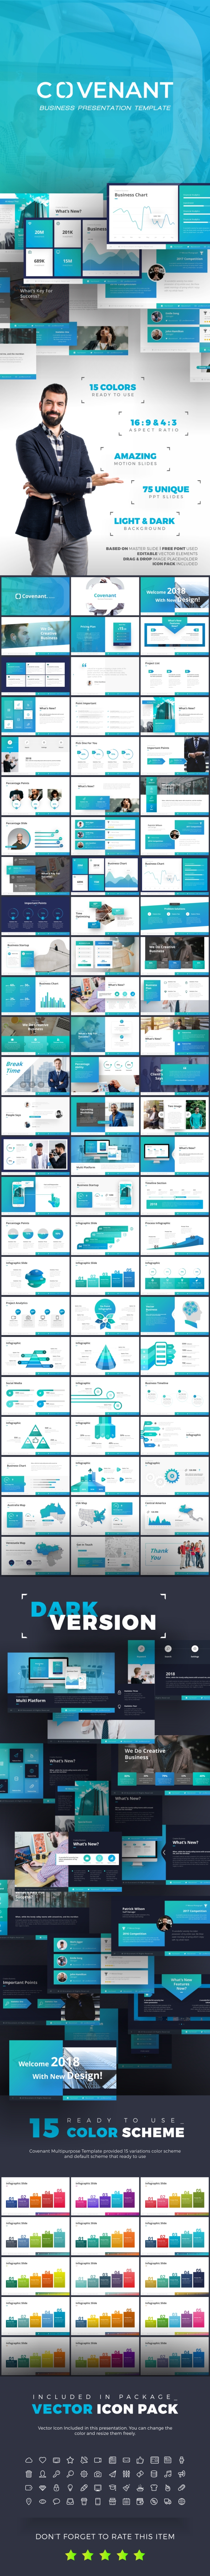 Covenant Business Presentation - Business PowerPoint Templates